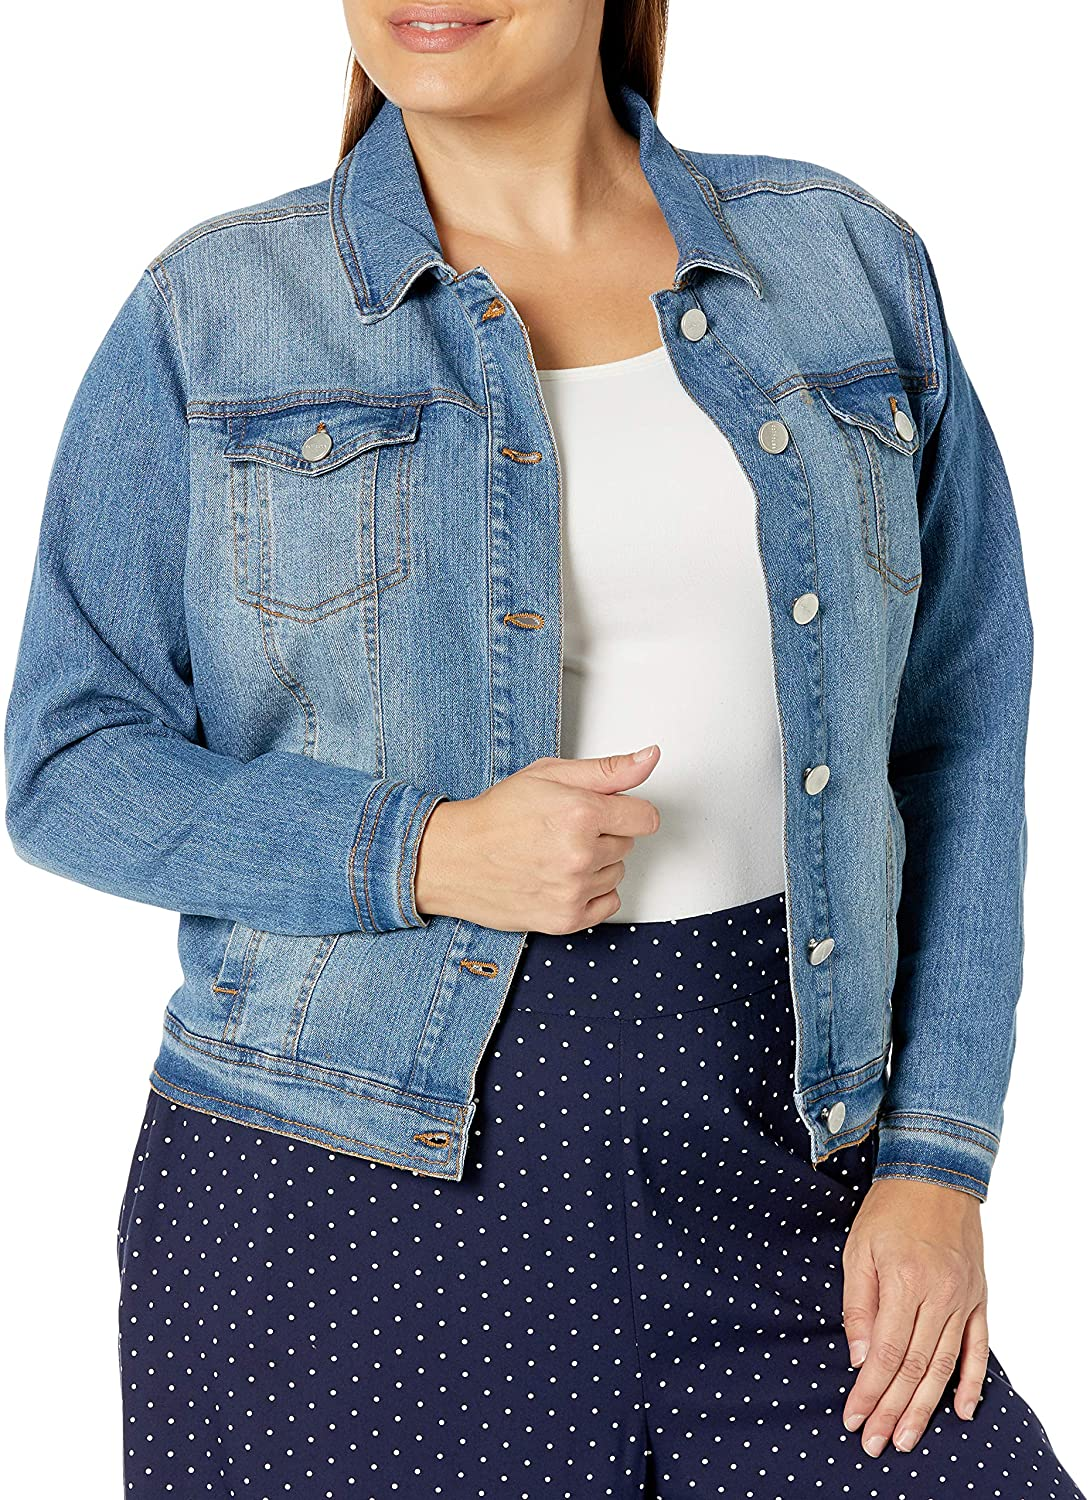 dollhouse Women's Spring Max 46% OFF new work one after another Size Denim Jacket